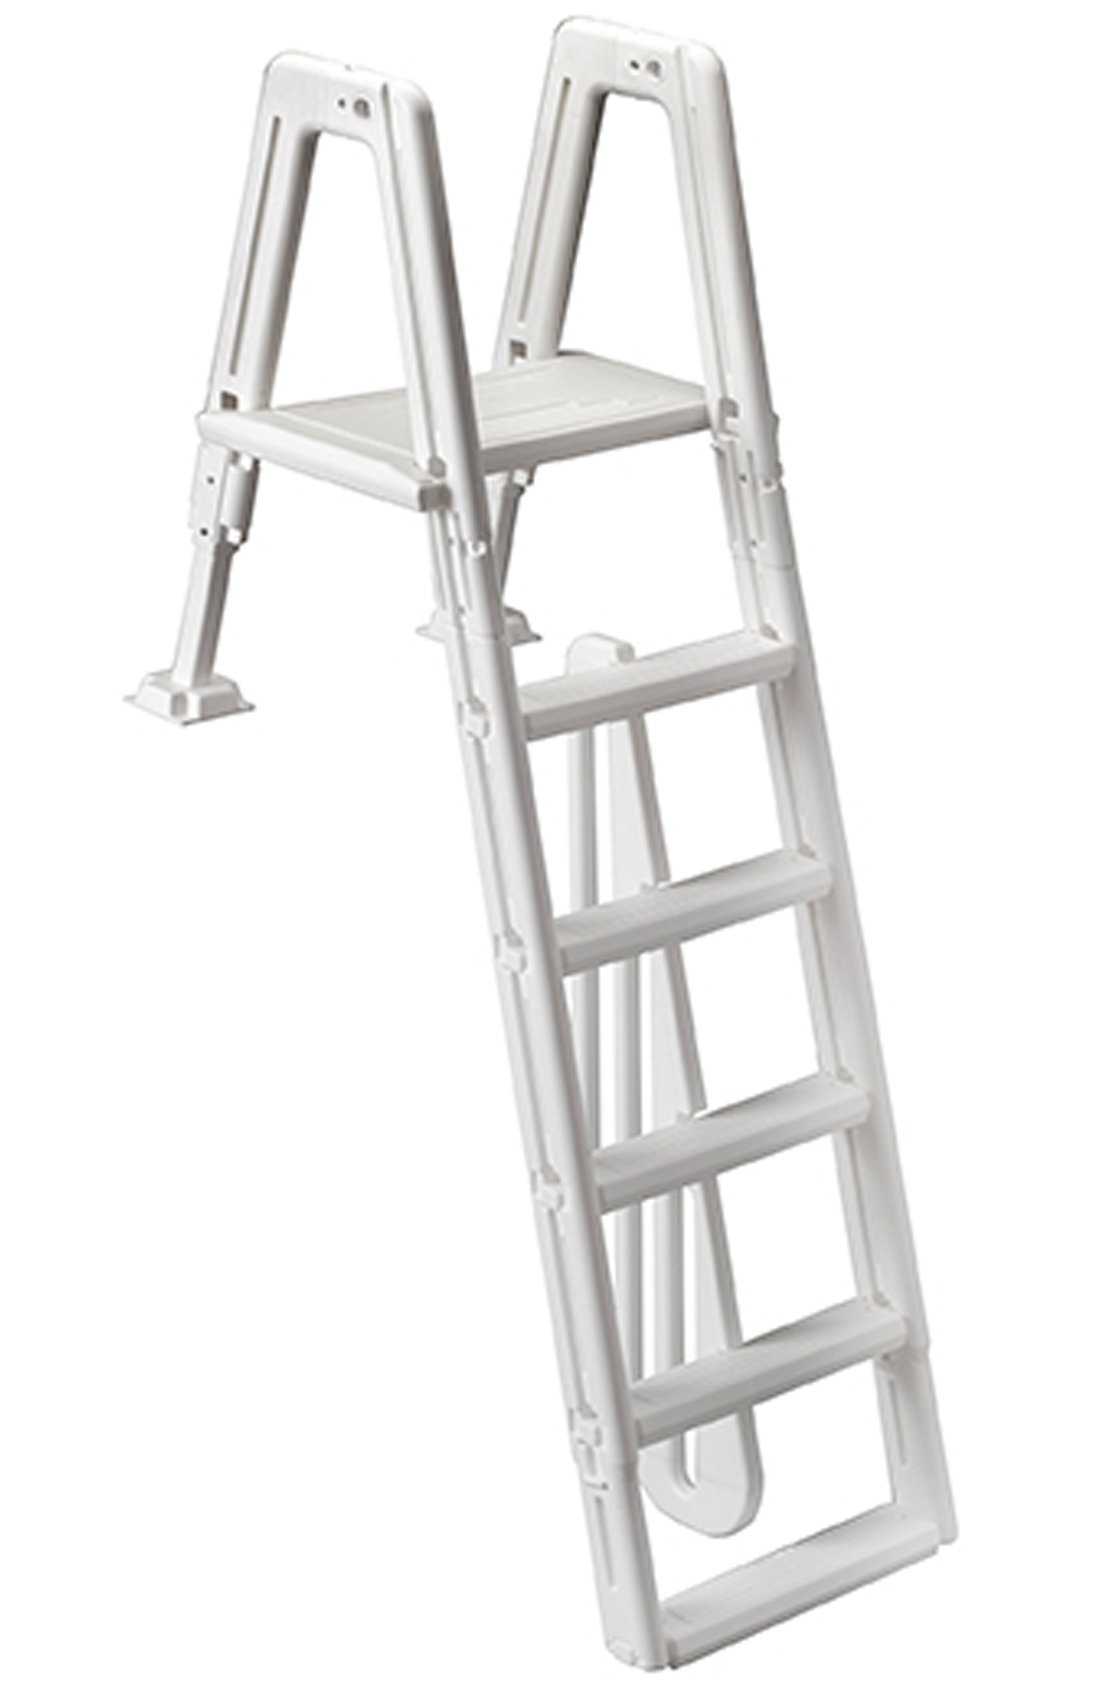 Ocean Blue 400900 Above Ground Swimming Pool Safety Ladder For Mighty Step Ebay